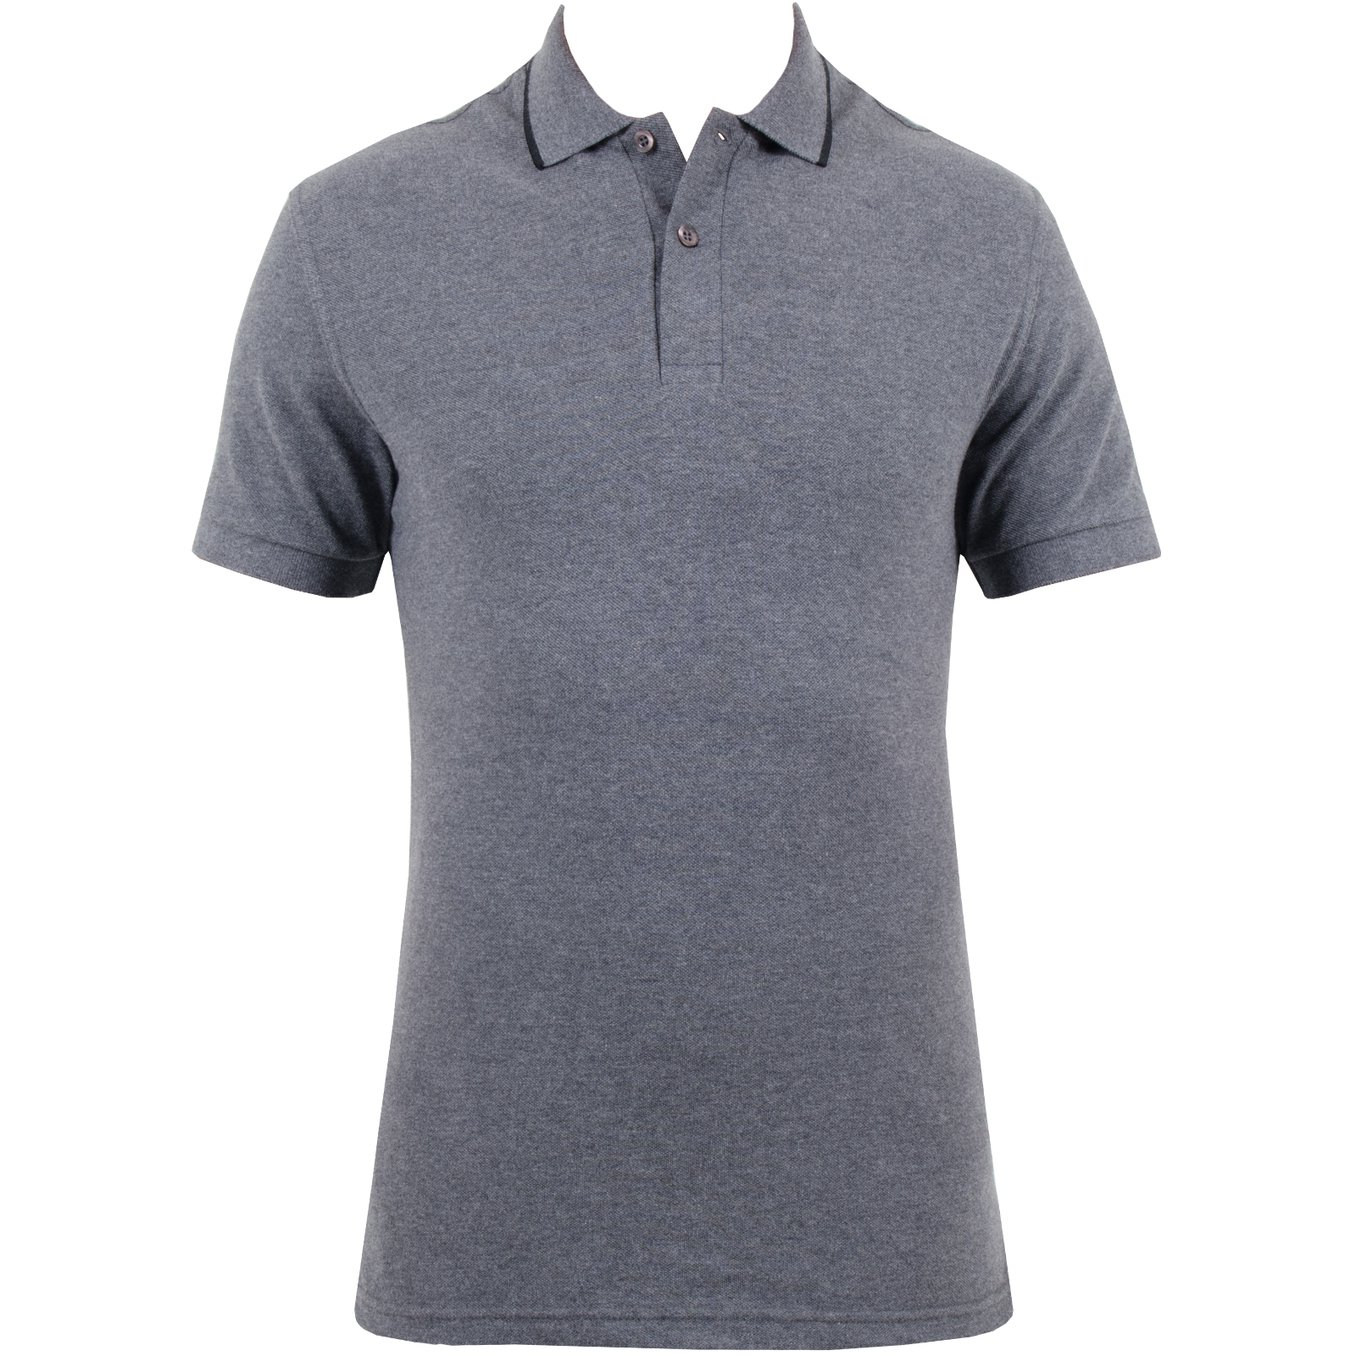 Top 10 Polo Shirts Part 2